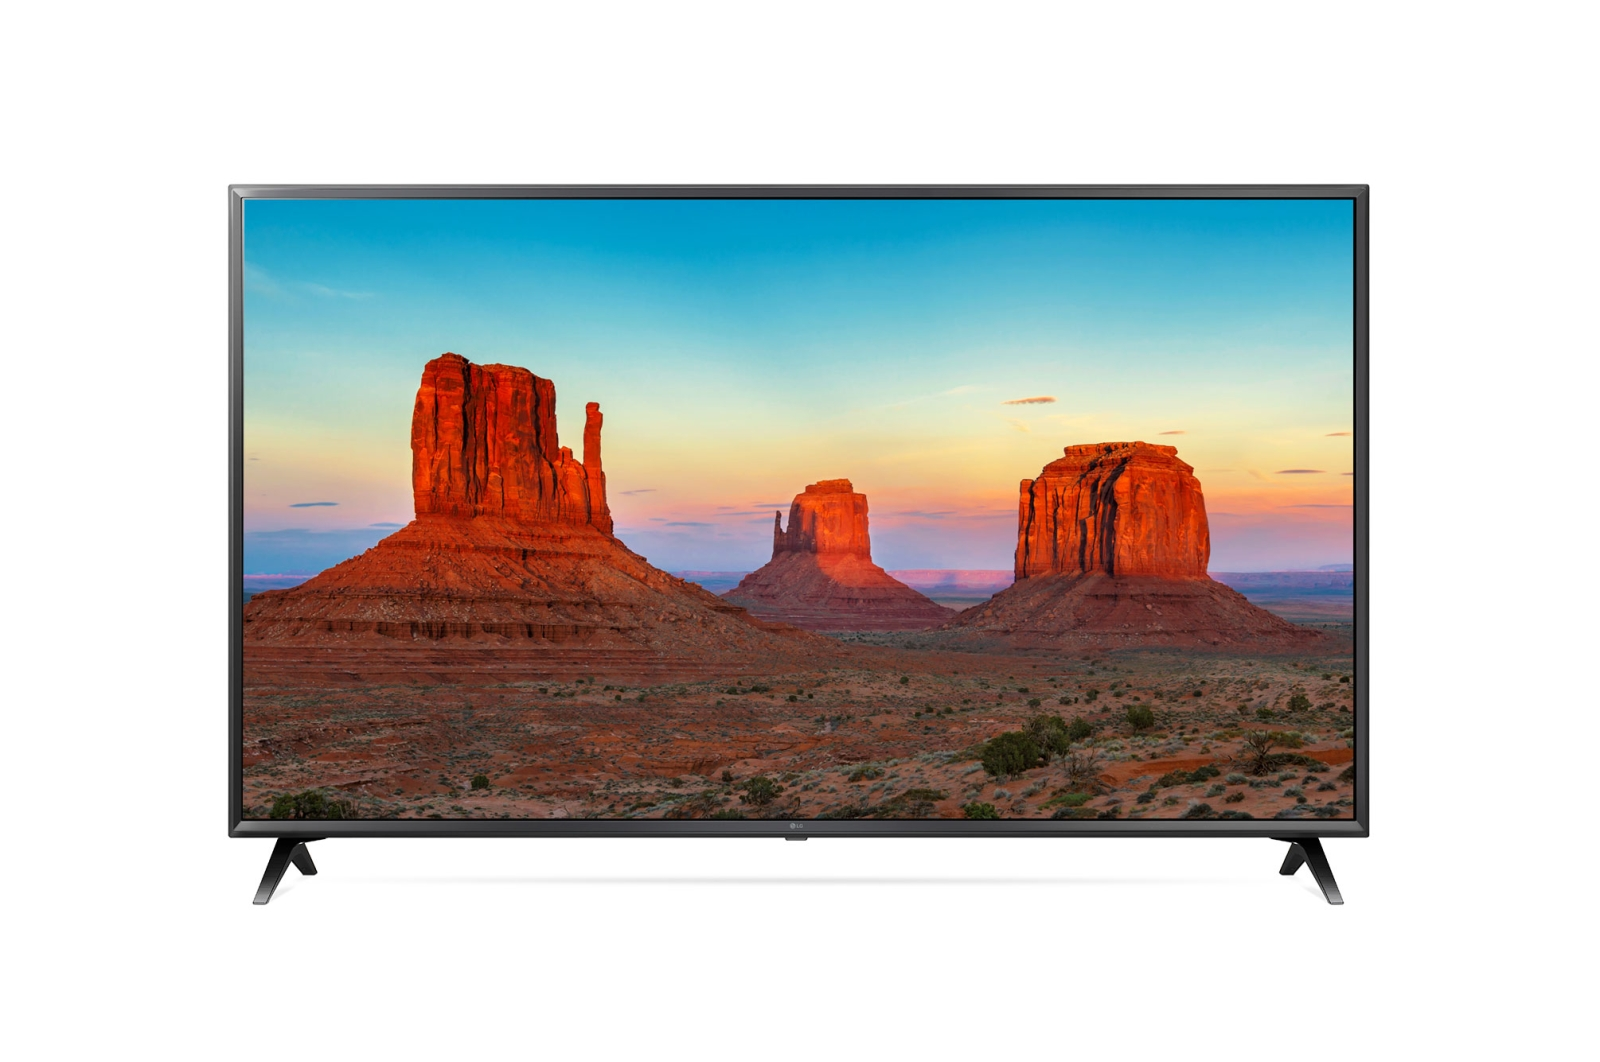 Телевизор LG 65UK6300 LED 65 Black, Smart TV, 16:9, 3840x2160, USB, HDMI, Wi-Fi, RJ-45, DVB-T2, C, S2 телевизор supra stv lc55st2000u led 55 black 16 9 3840x2160 120000 1 300 кд м2 usb 3xhdmi wifi rj 45 dvb t2 c s2